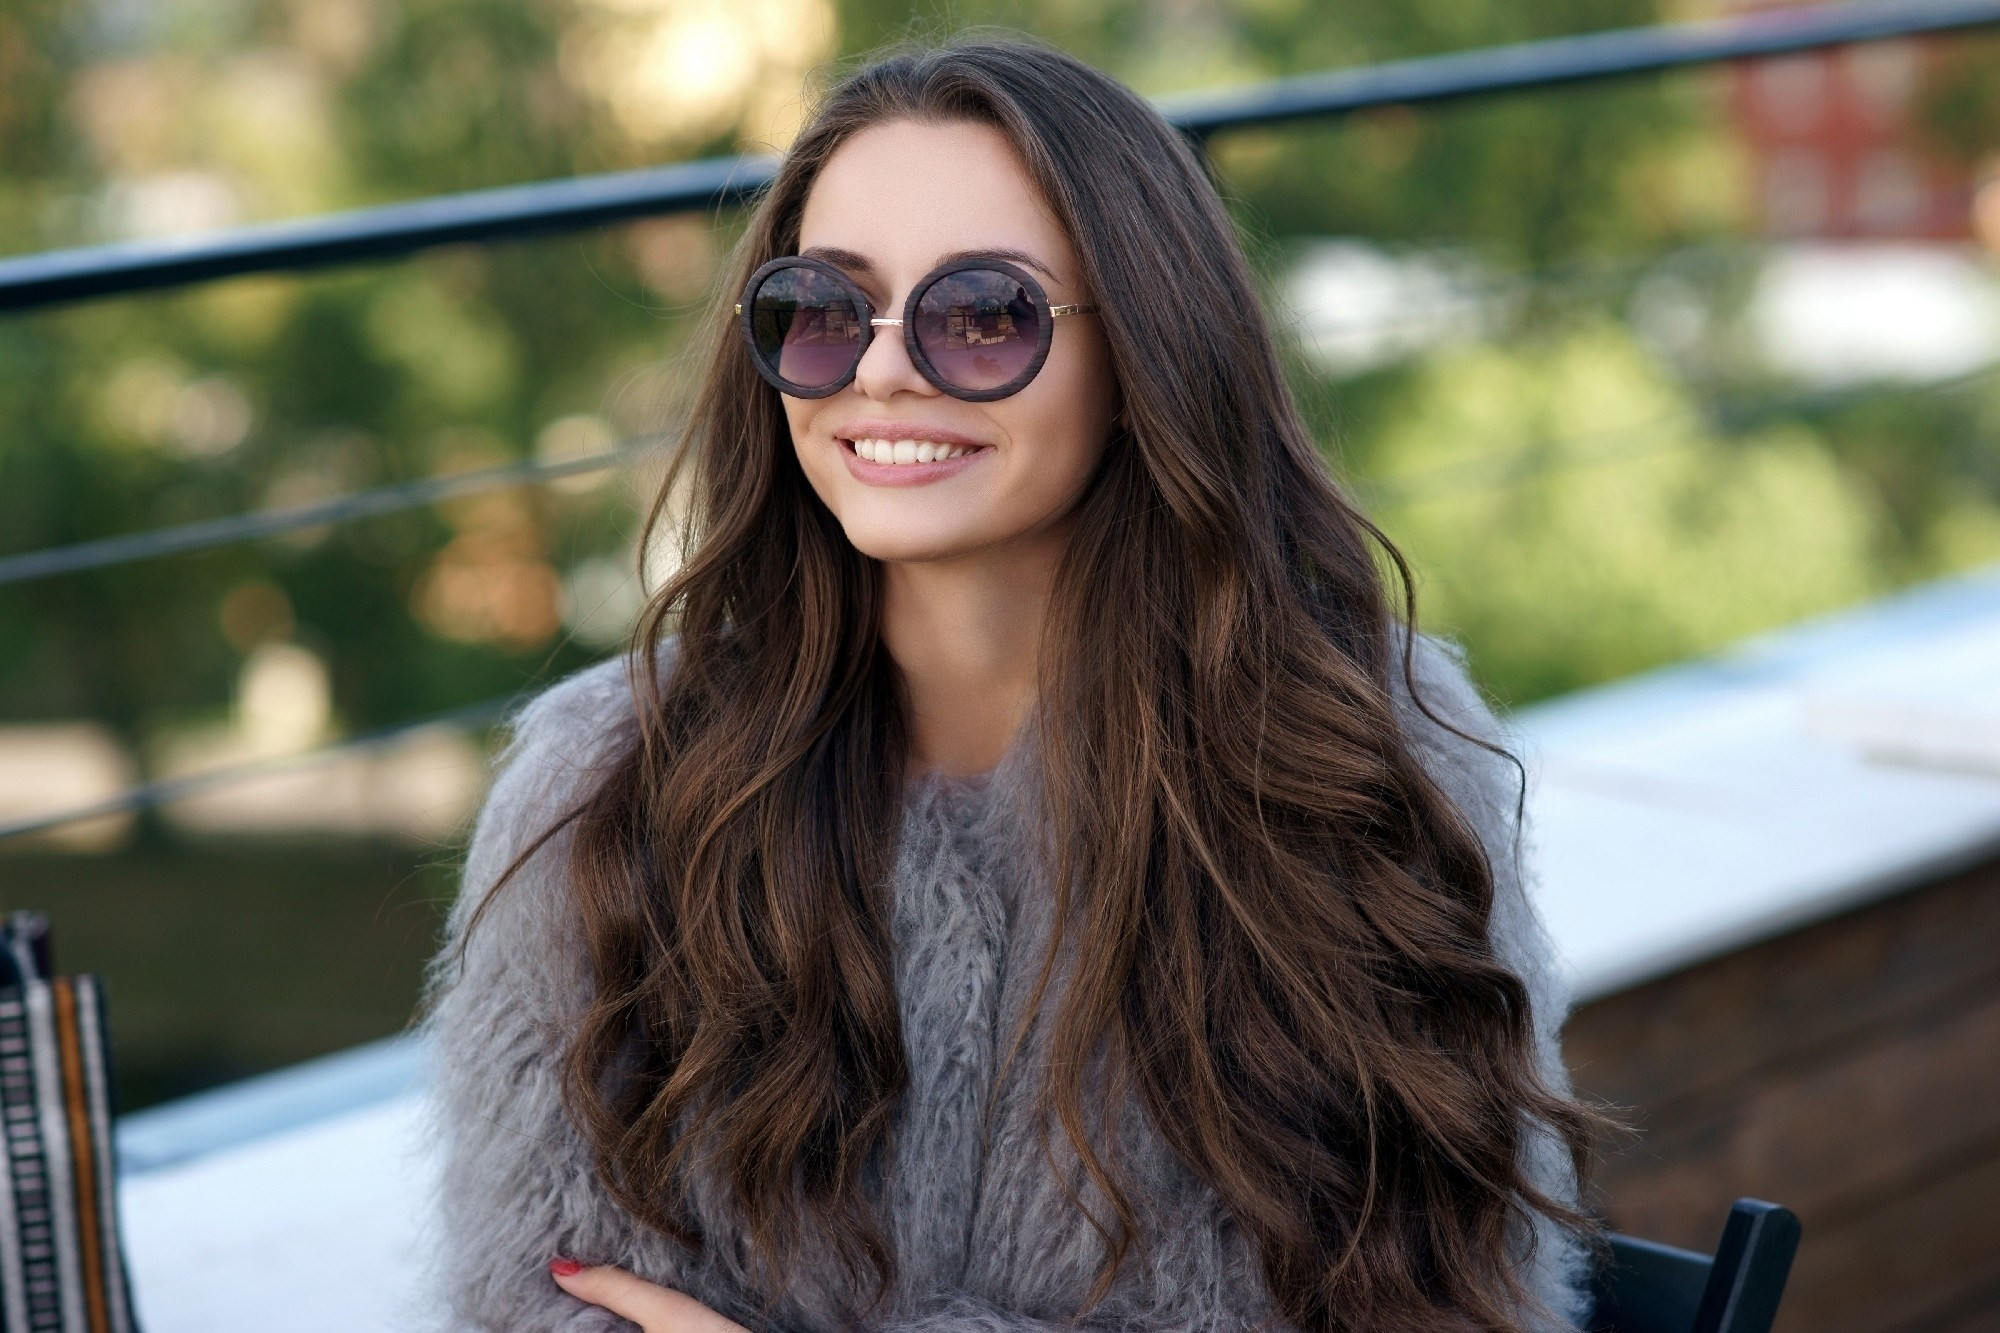 cute hairstyles for long hair - Long and wavy shutterstock